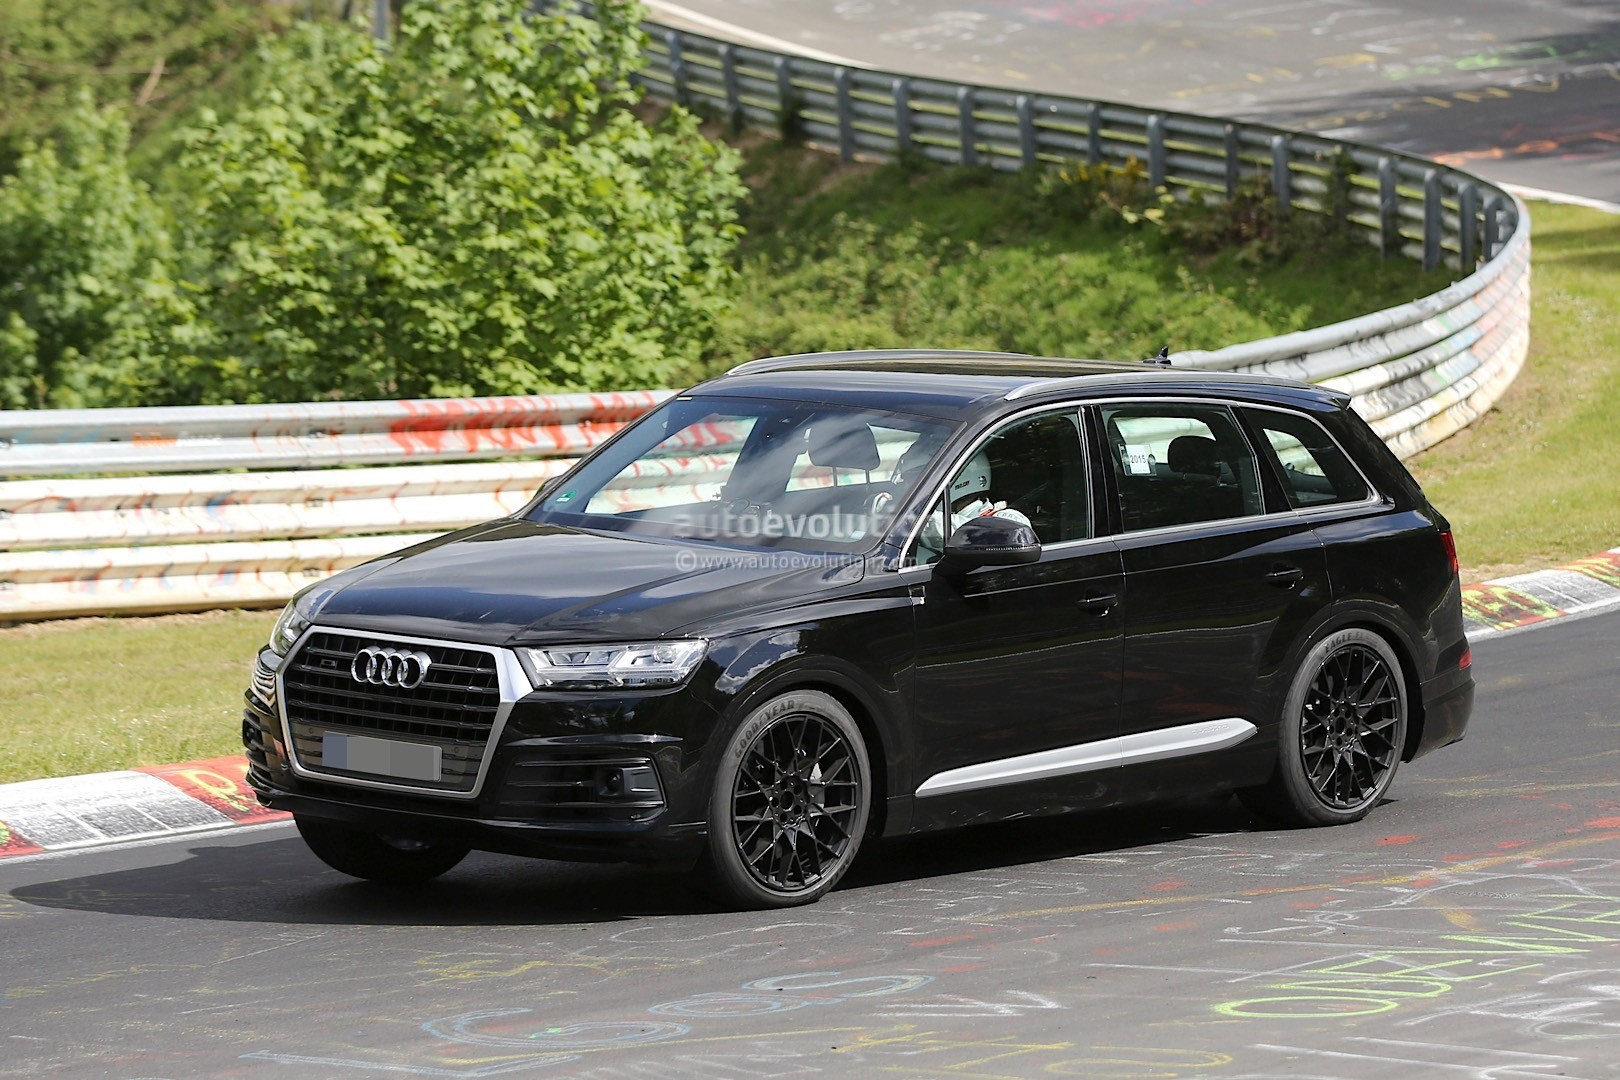 Audi Sq7 Will Pack New 4 0 Tdi With 435 Ps Spec Sheet